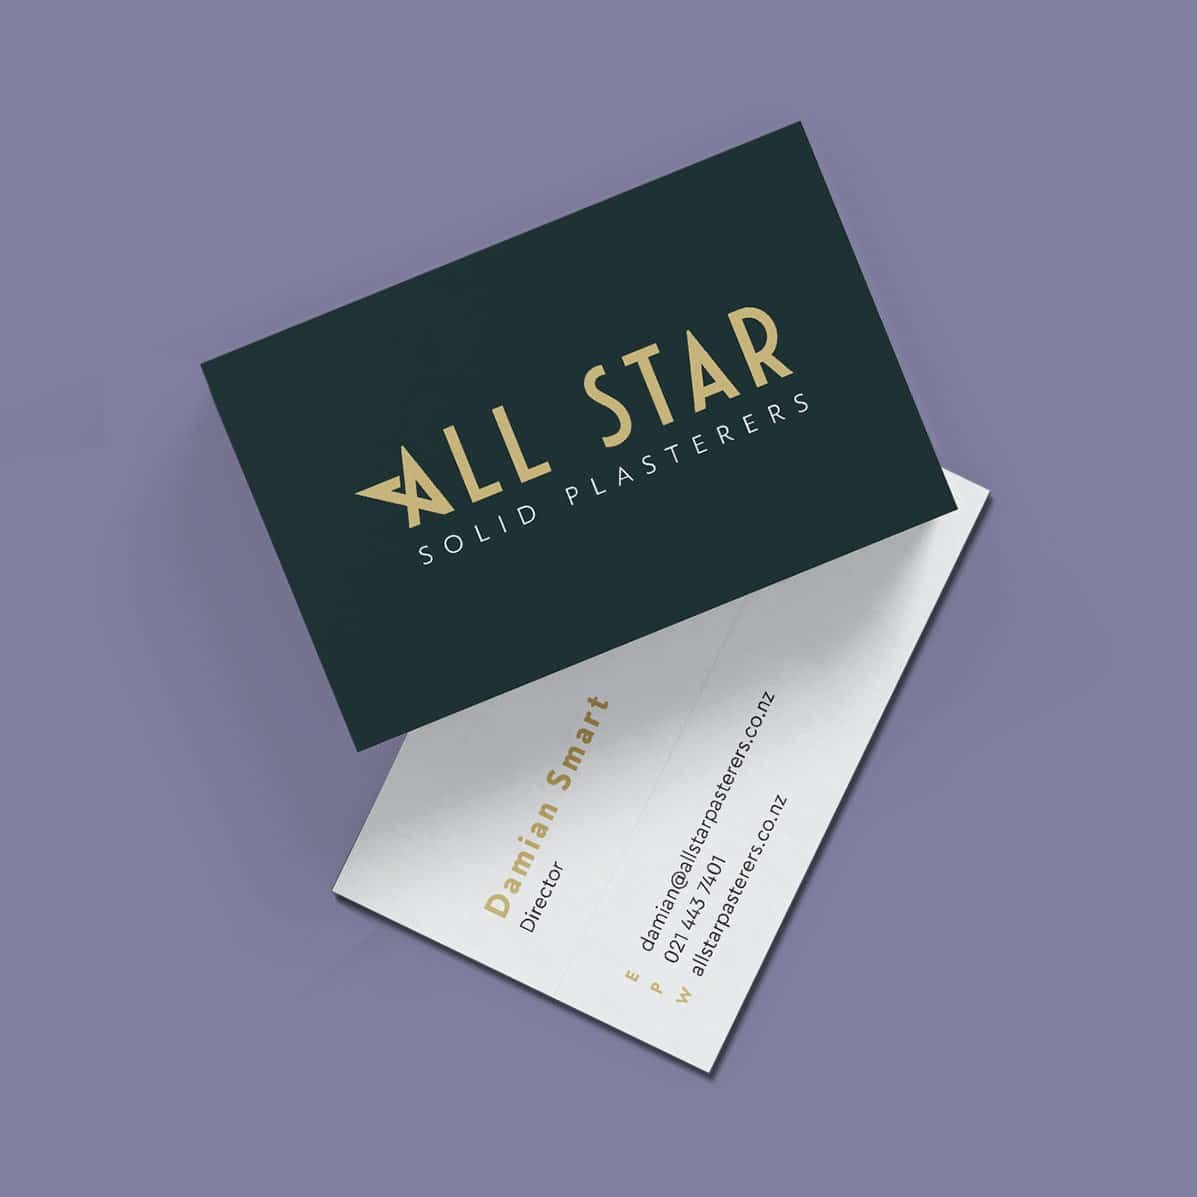 Branding for plasterers business cards